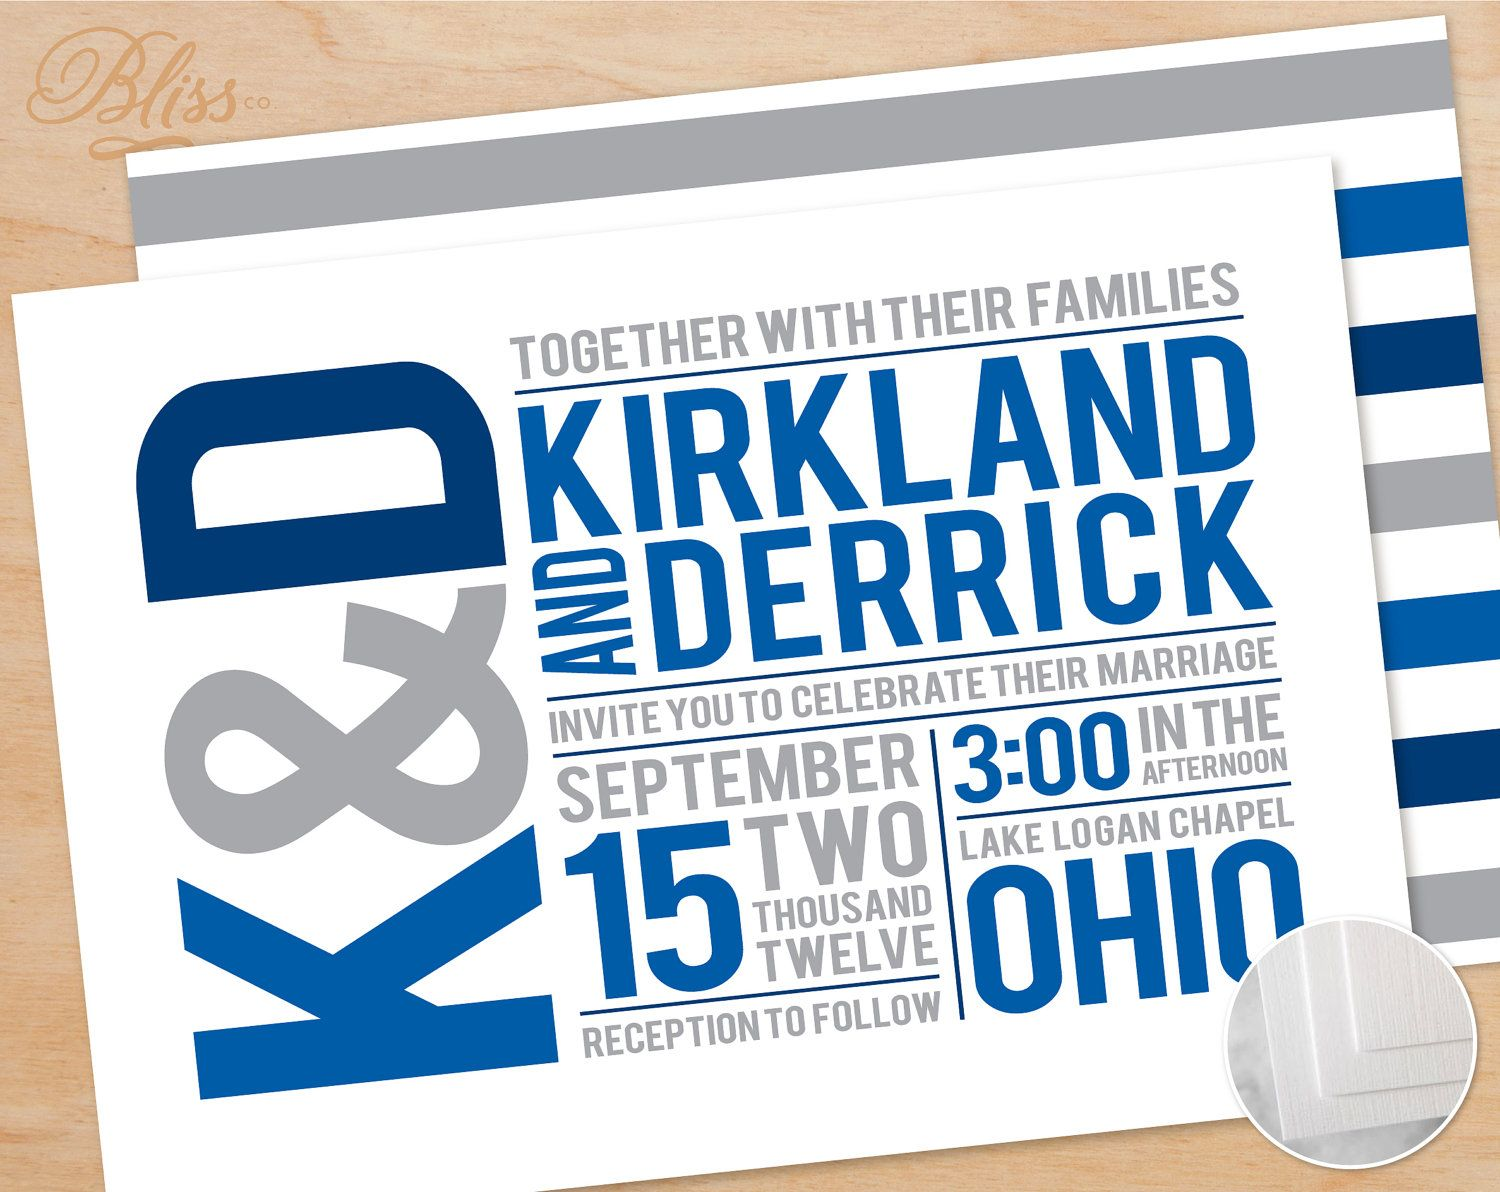 Printable Wedding Invitation Suite – Gay/Lesbian Couple, Invitation, RSVP, Save the Date, Info Card, Blue, Stripes, Traditional, Classic